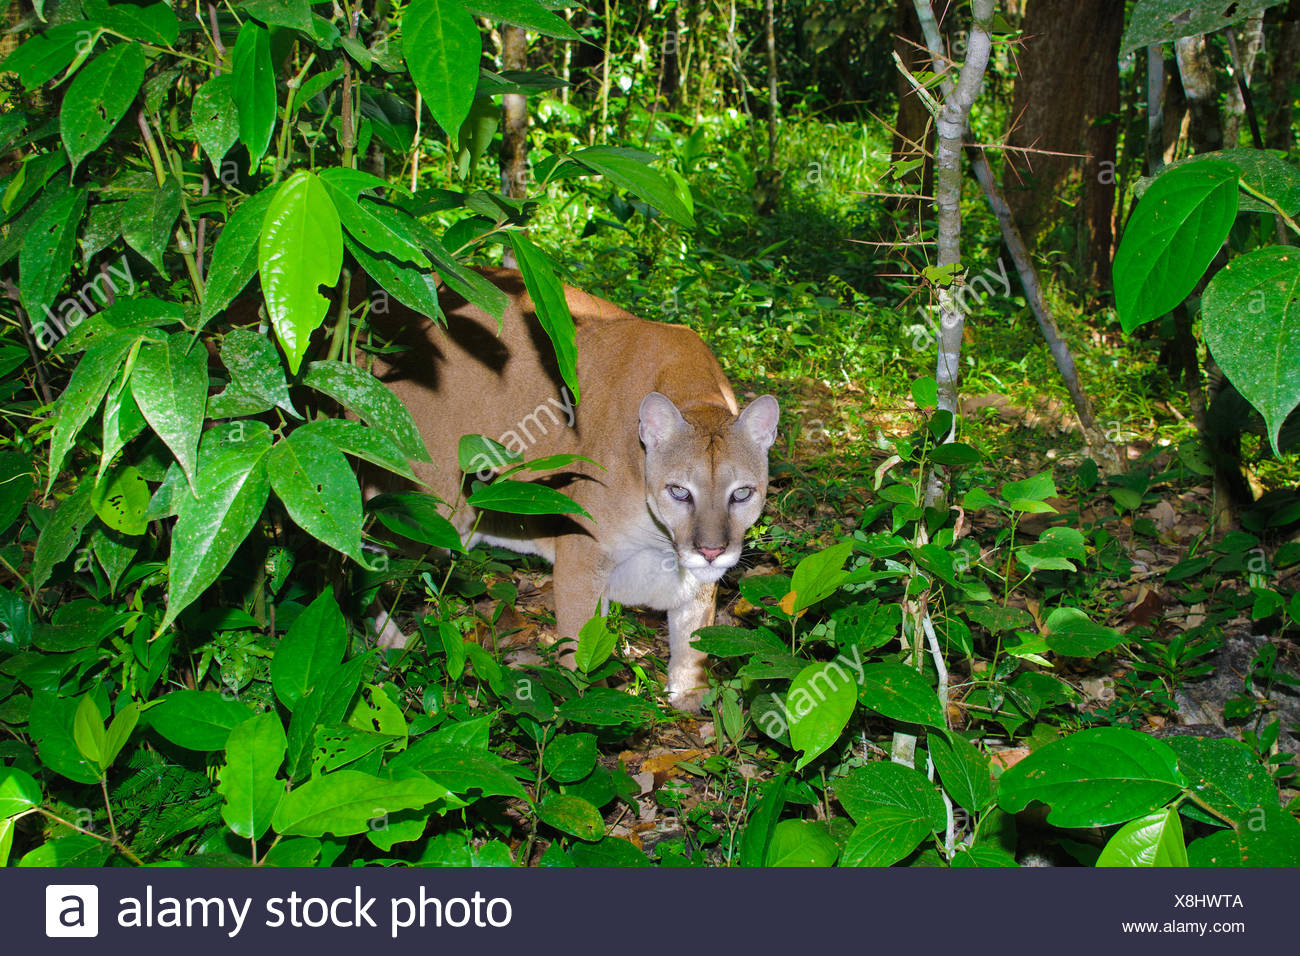 Central American Puma (Felis concolor), tropical rain forests, Belize, Central America Stock Photo